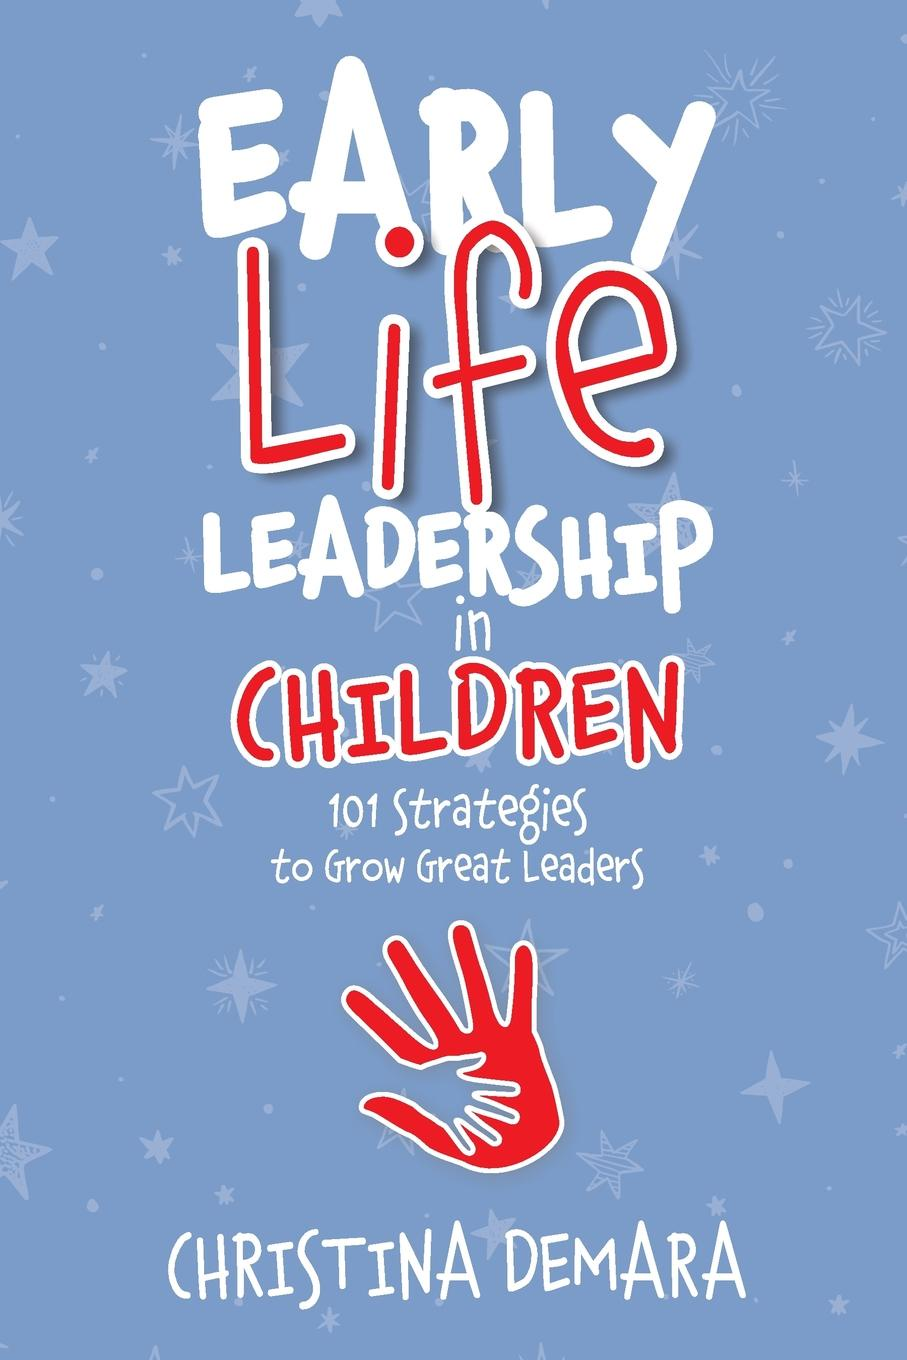 Christina DeMara Early Life Leadership in Children. 101 Strategies to Grow Great Leaders thomas kolditz a in extremis leadership leading as if your life depended on it